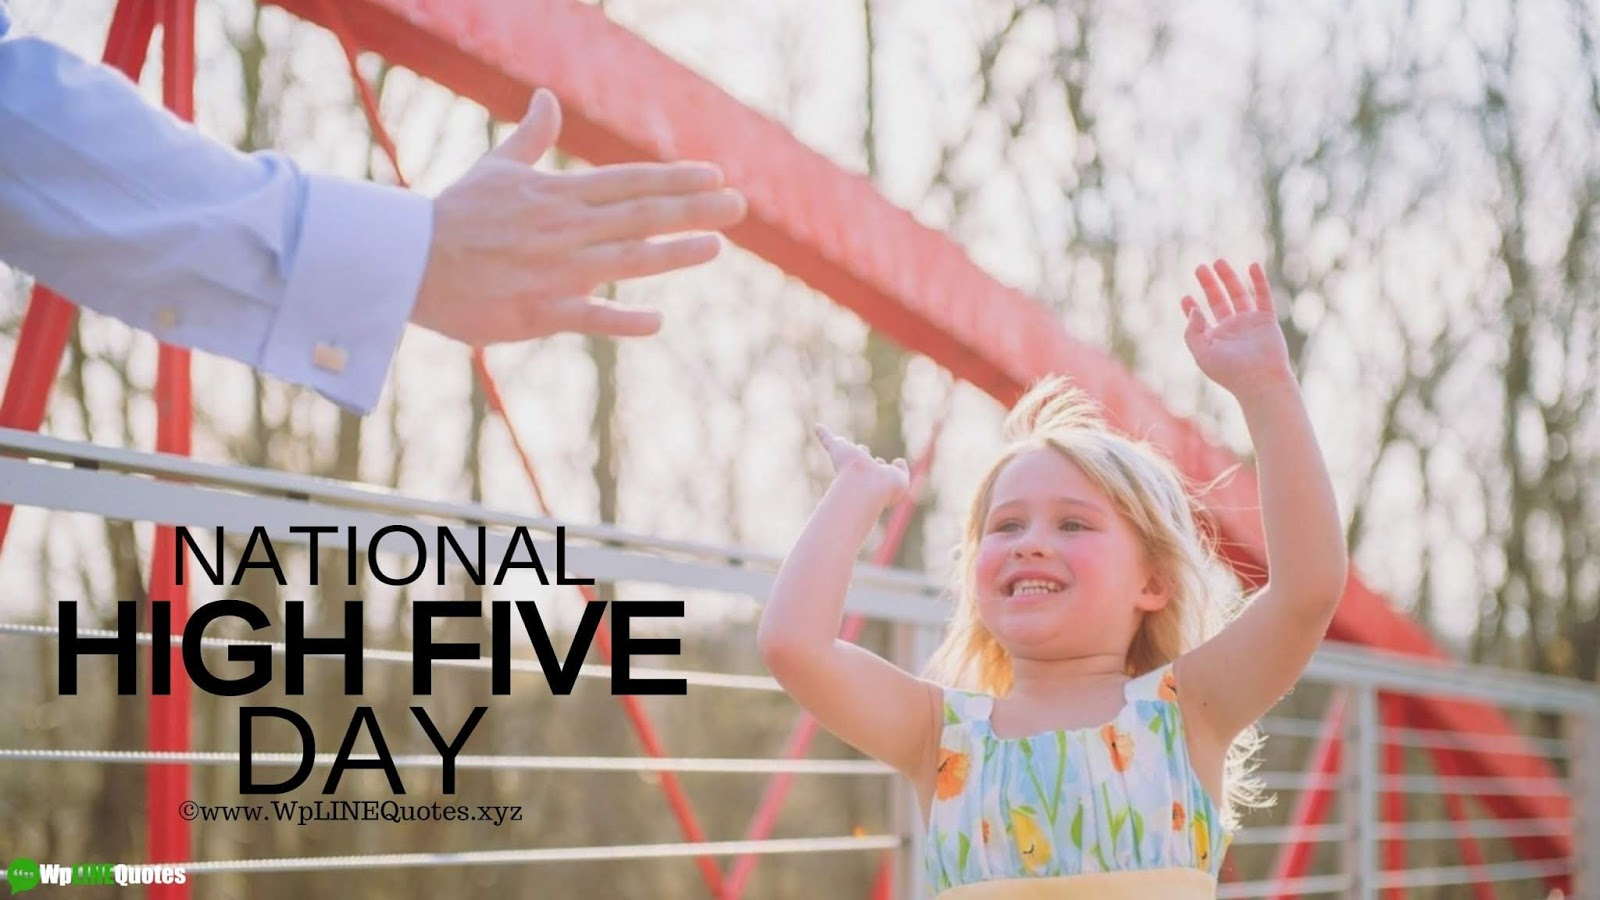 National High Five Day Quotes, Wishes, Meme, History, Ideas, Images, Pictures